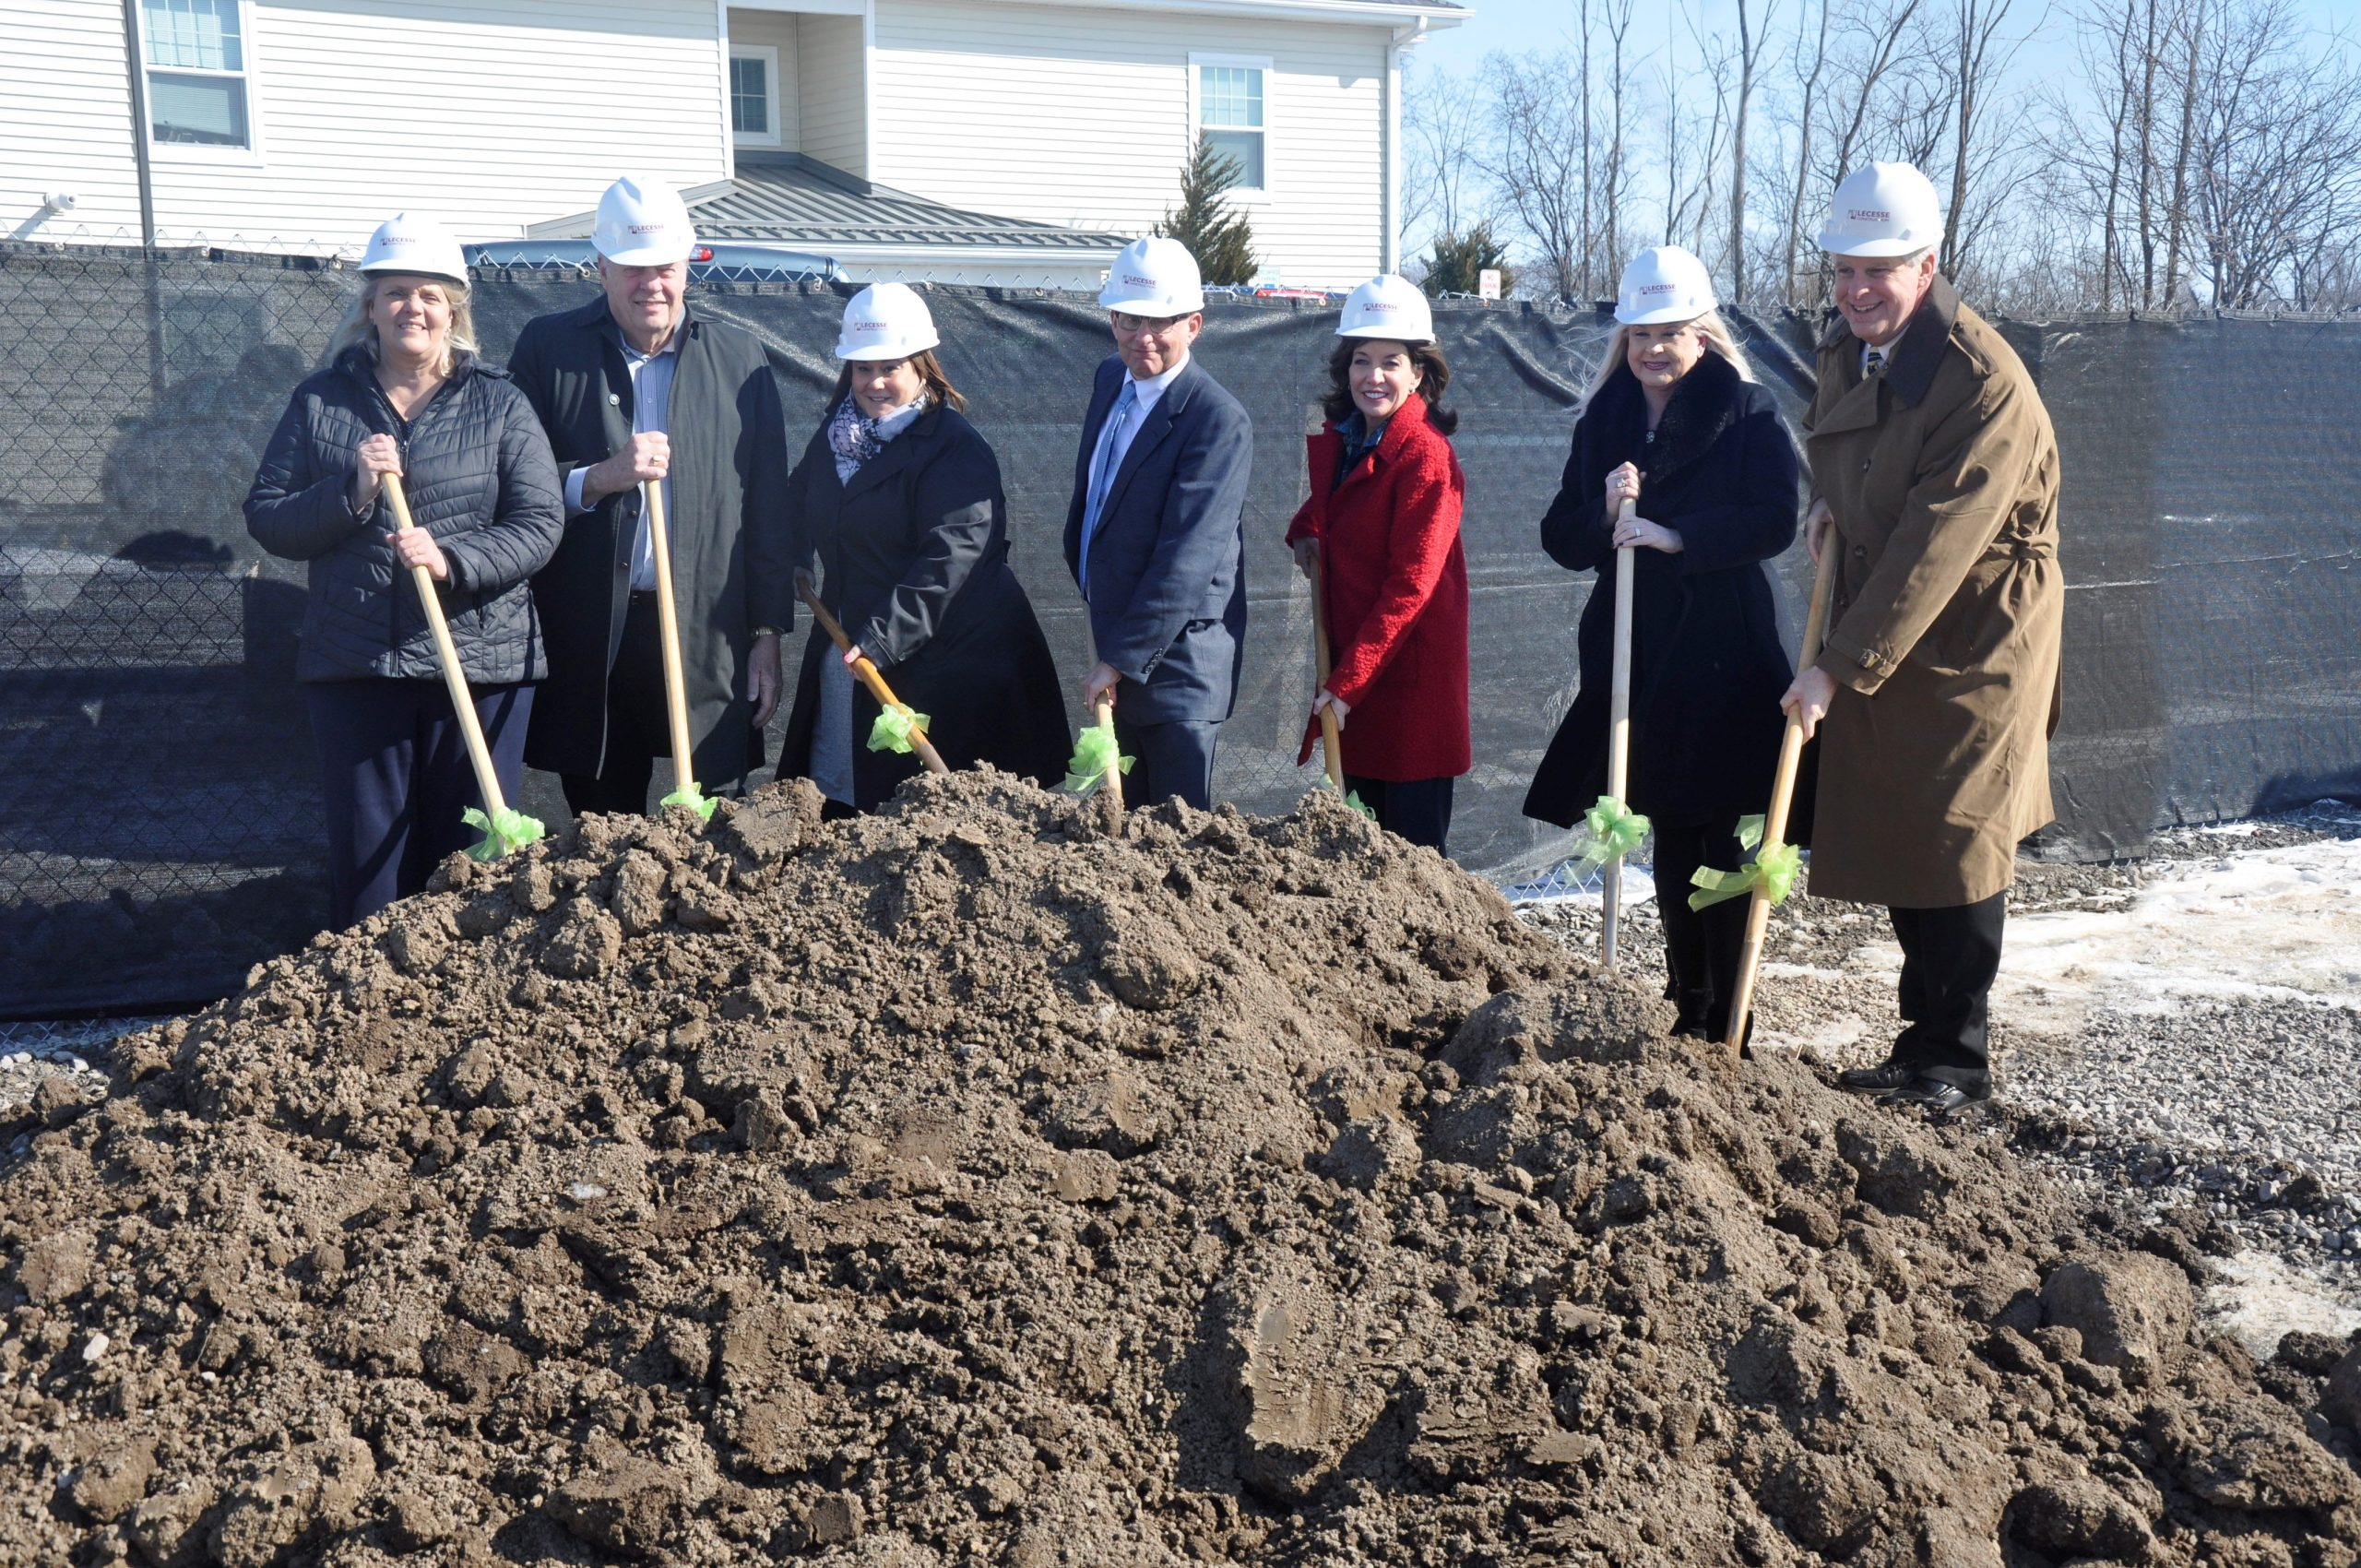 Ground broken on $9.7M affordable, supportive housing development in Canandaigua